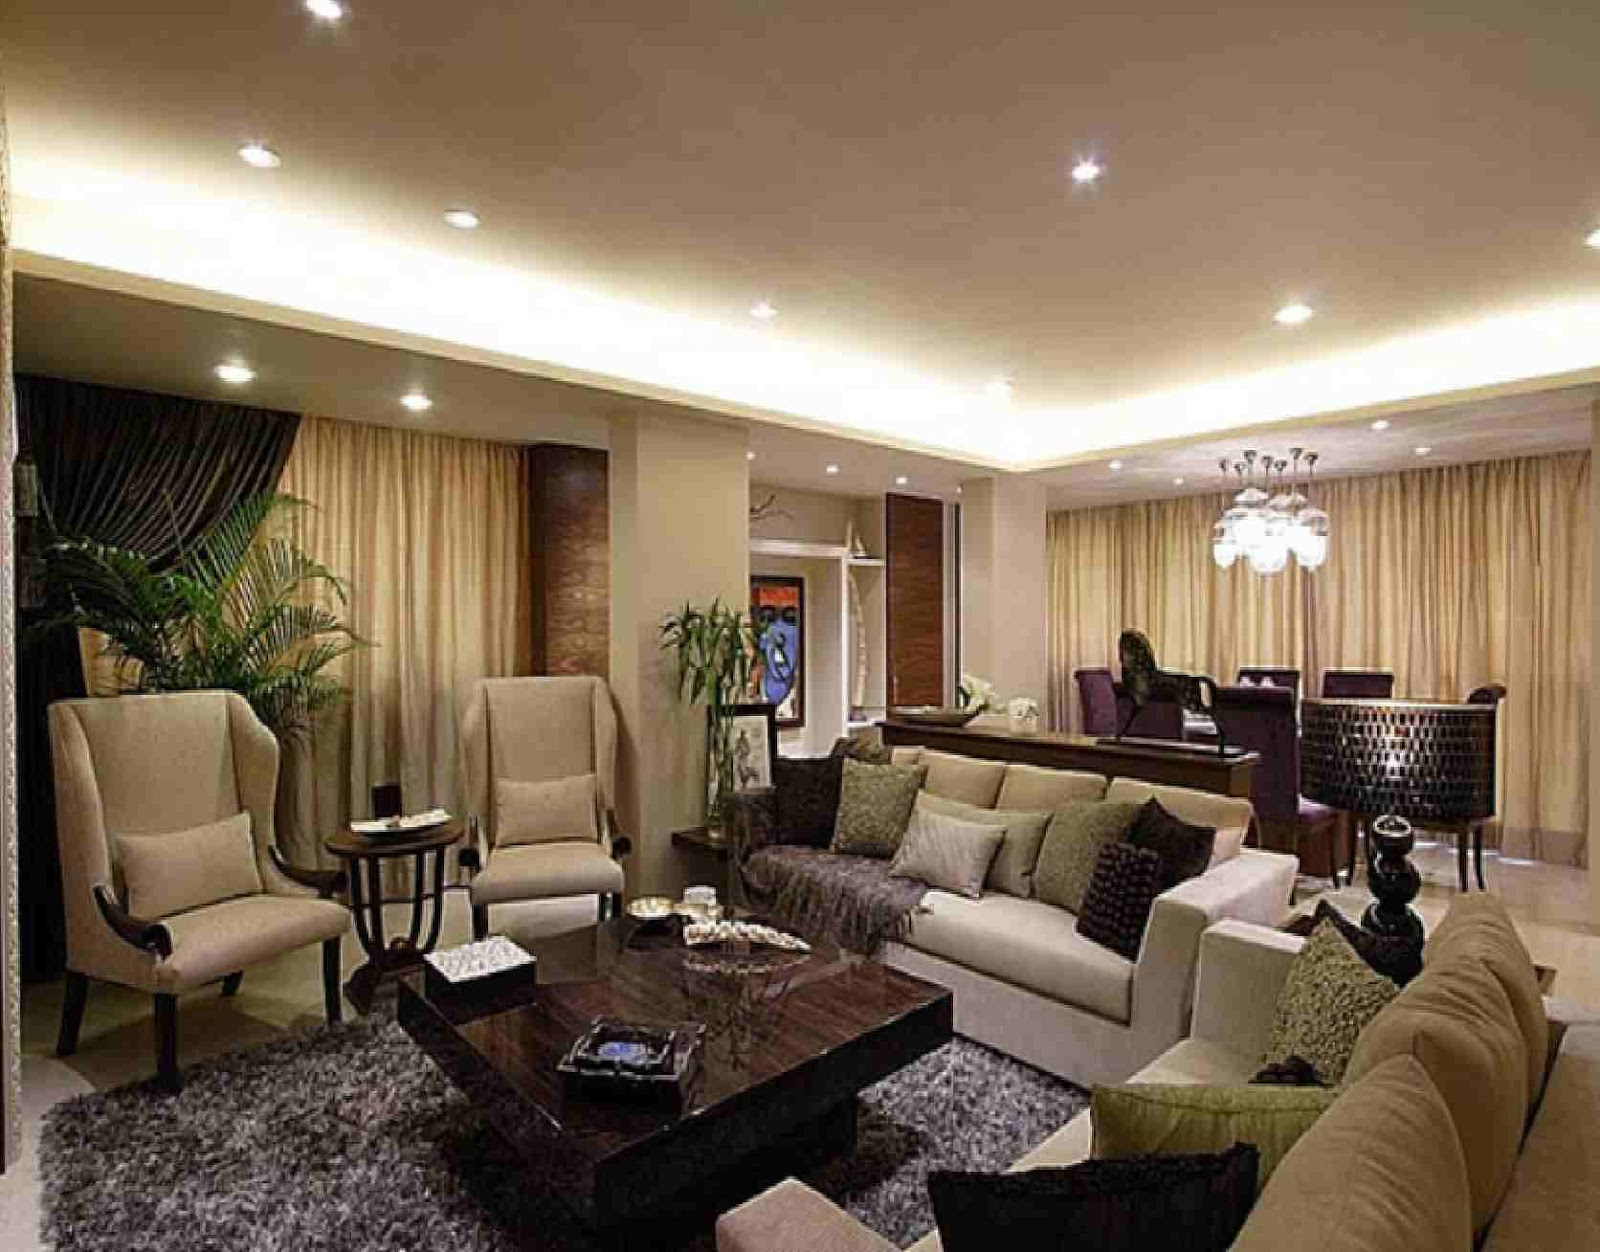 Living Room Perfect Living Room design home pictures the perfect living room easily easily